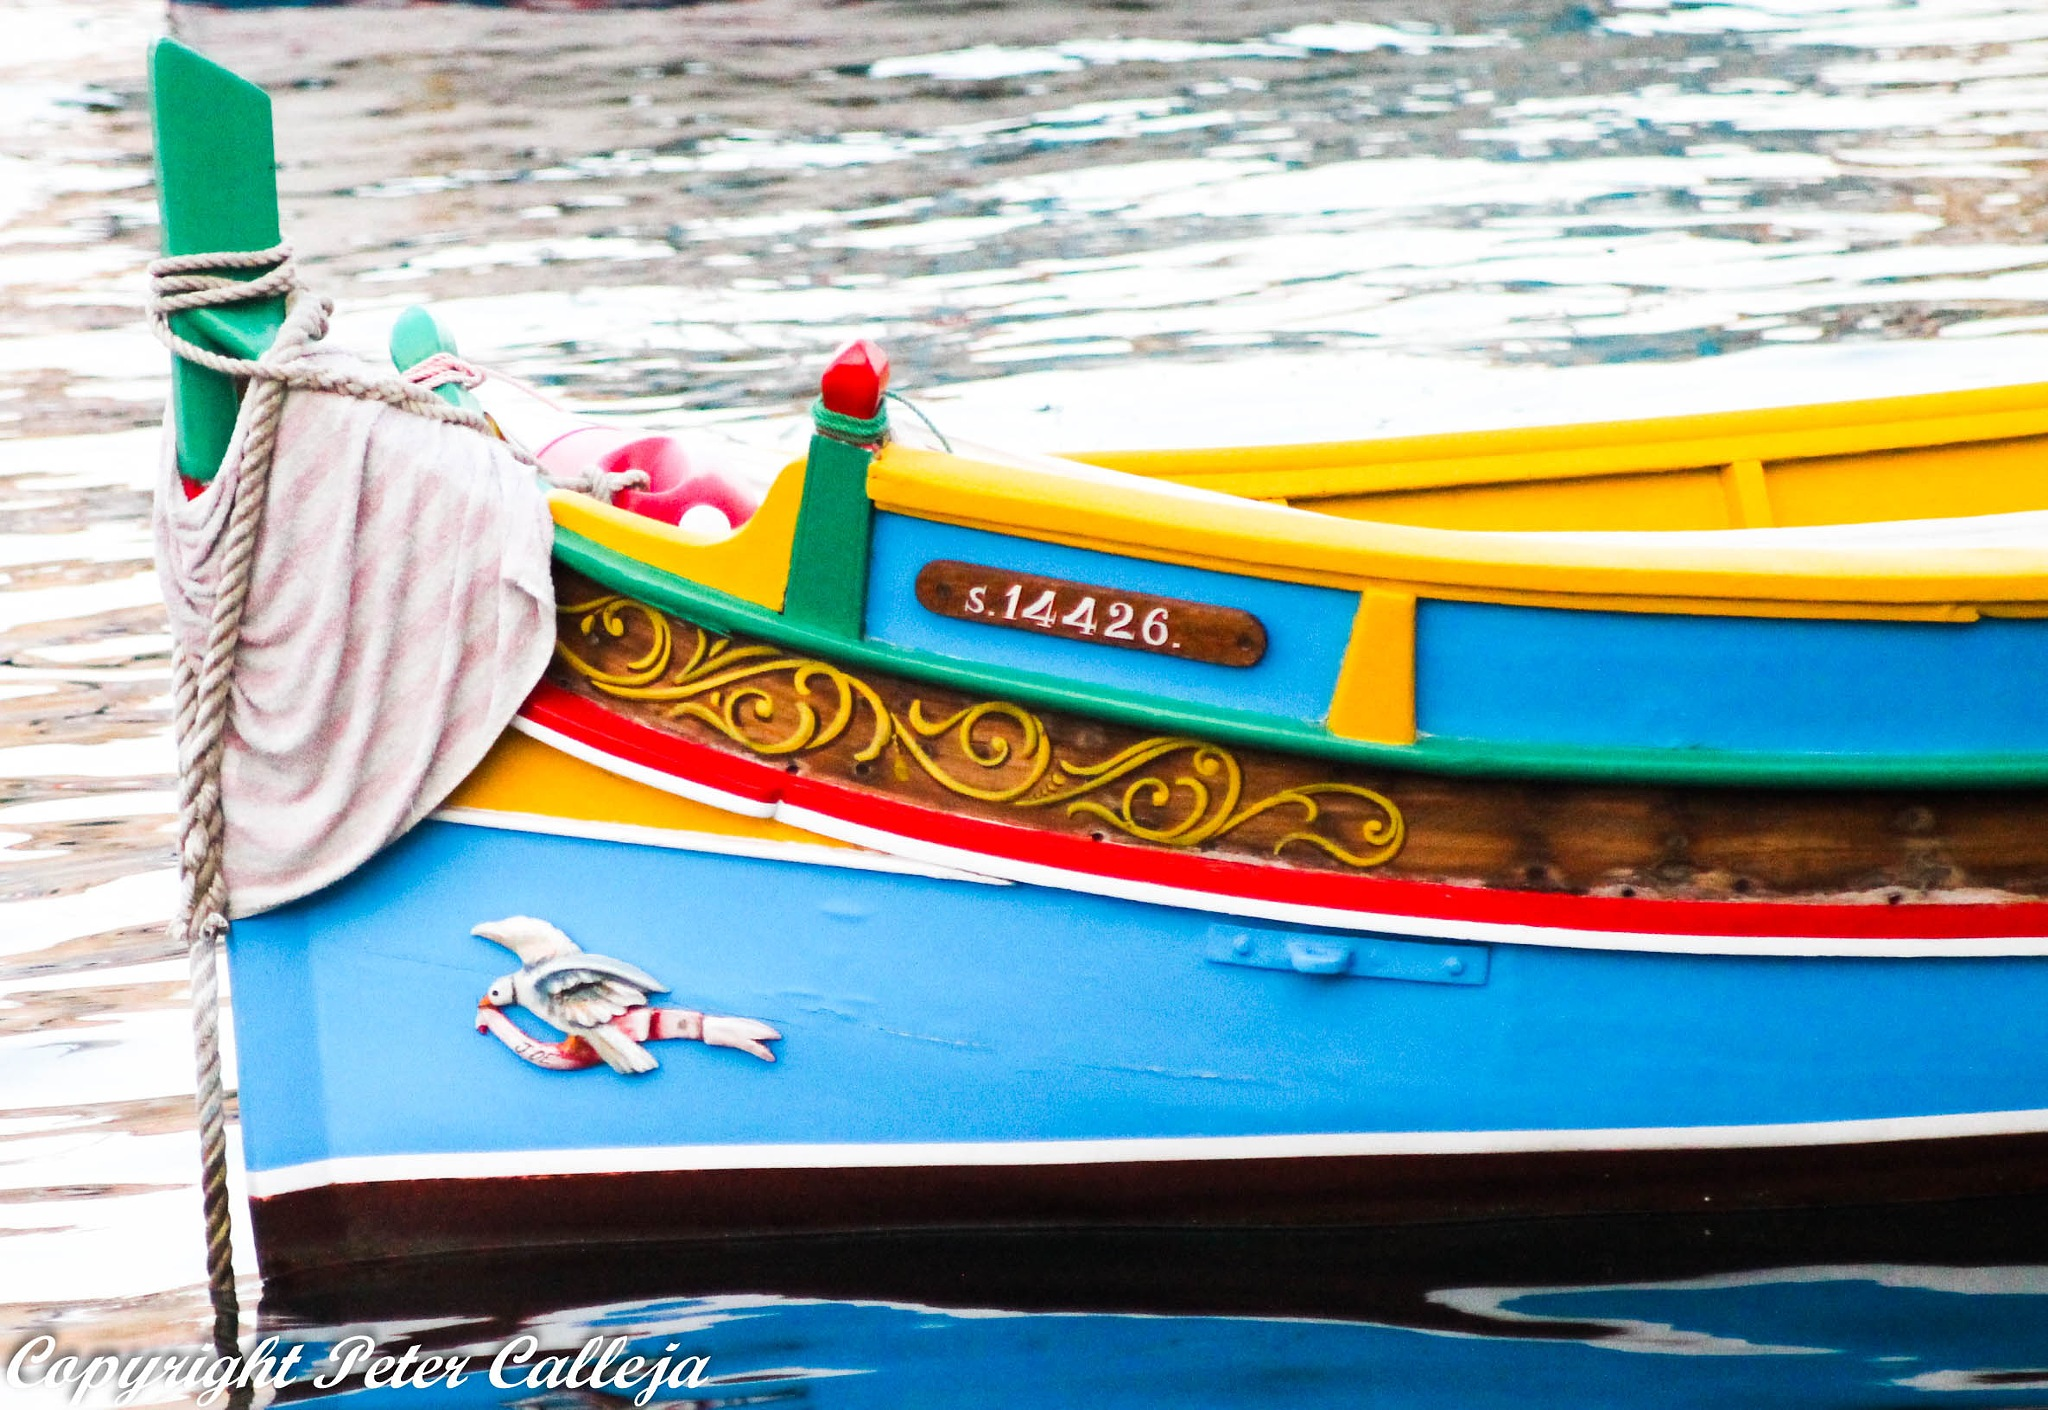 The Maltese Fishing Boat by Peter Calleja